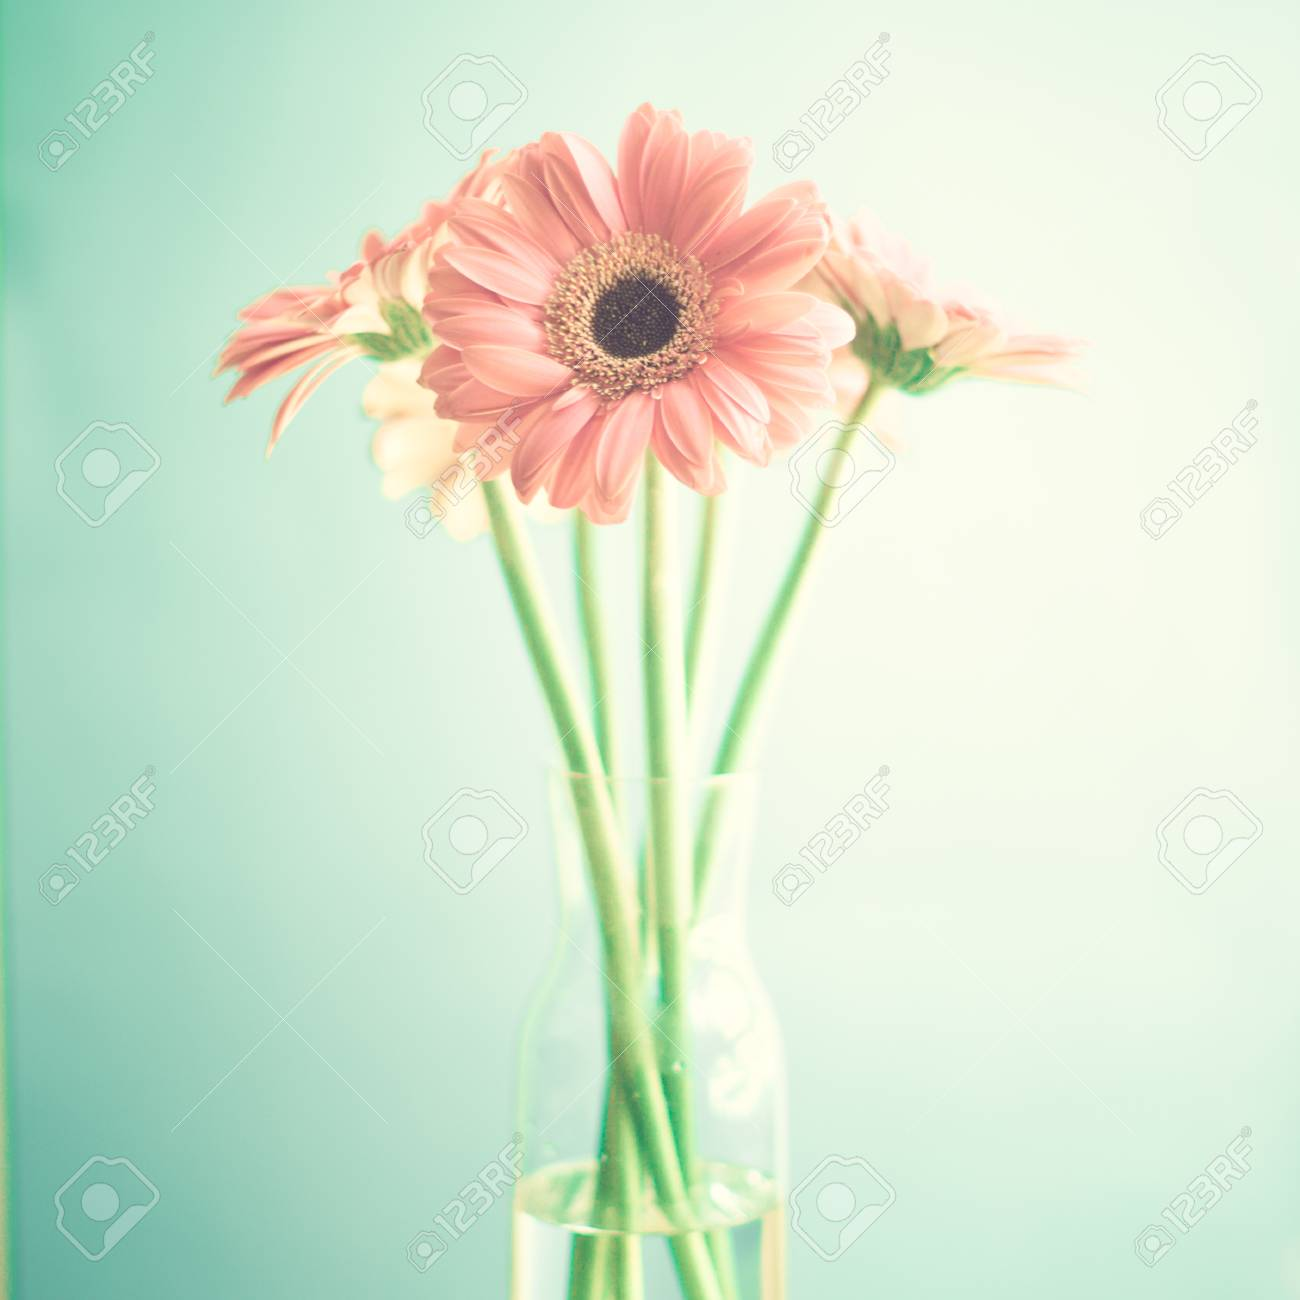 Vintage Pink Flowers Stock Photo Picture And Royalty Free Image